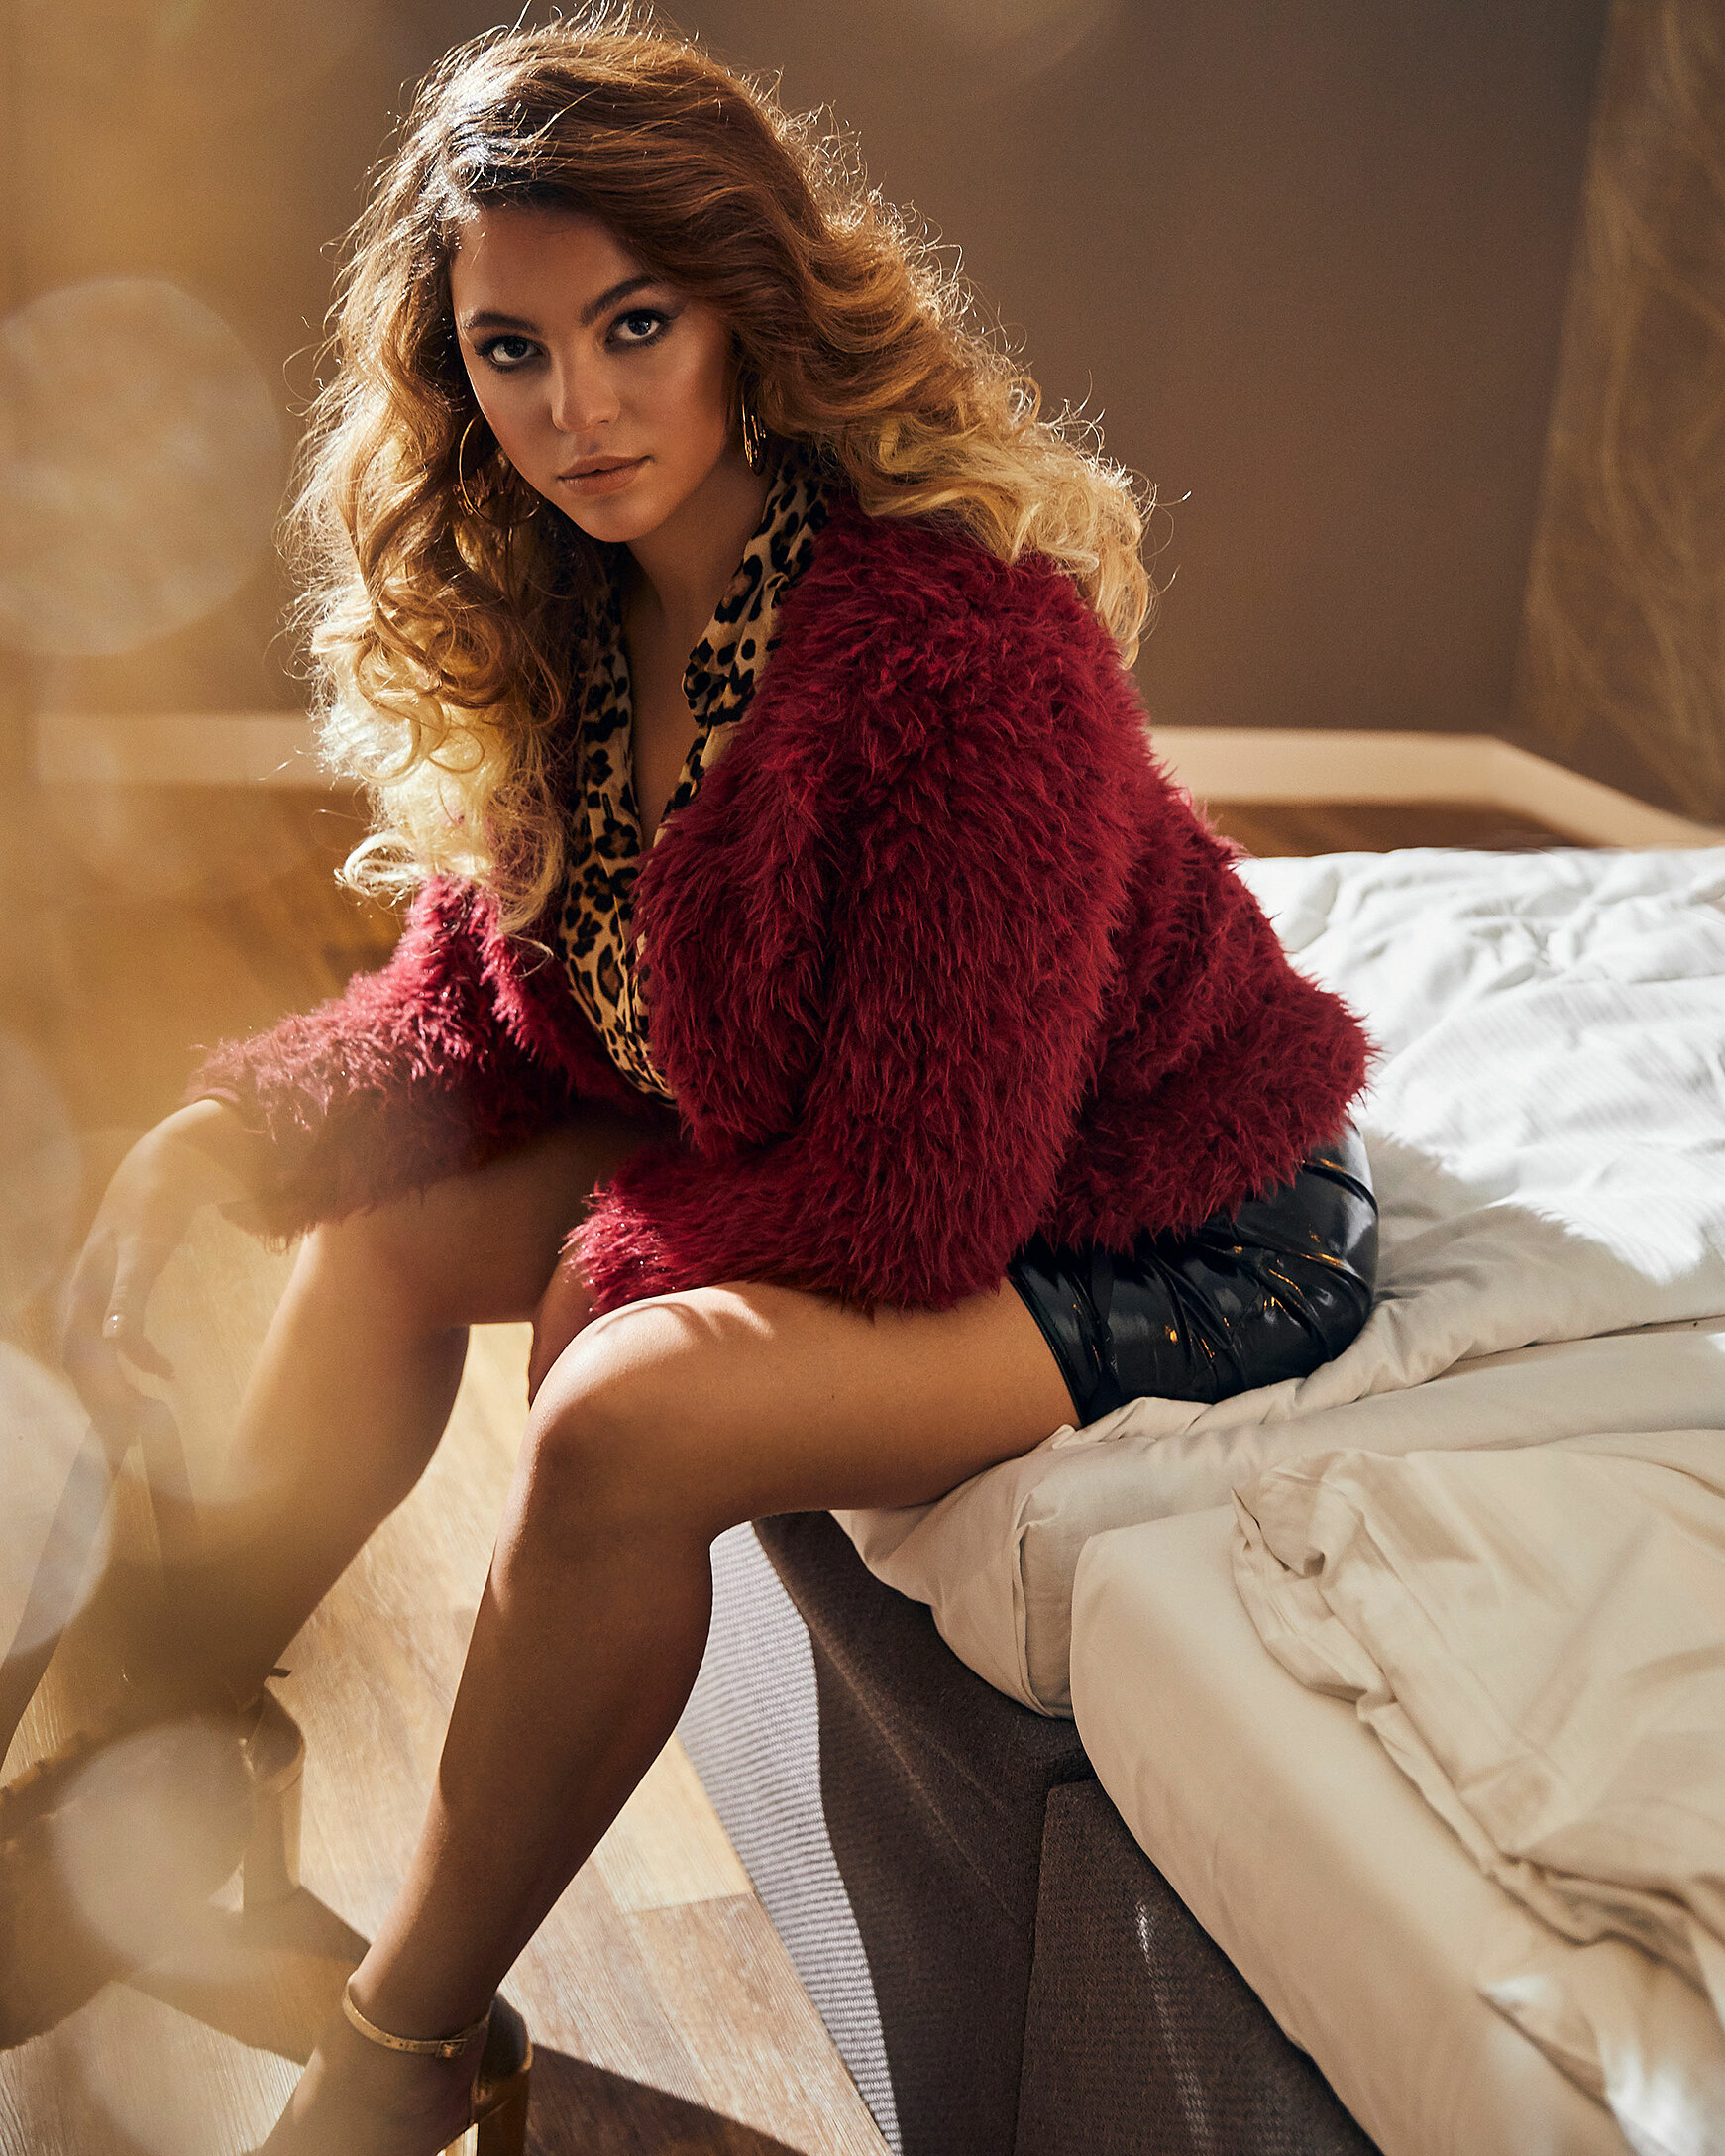 A brown hair model sits on bed in a blackberry teddy jacket with a black skirt and a blouse with leopard print